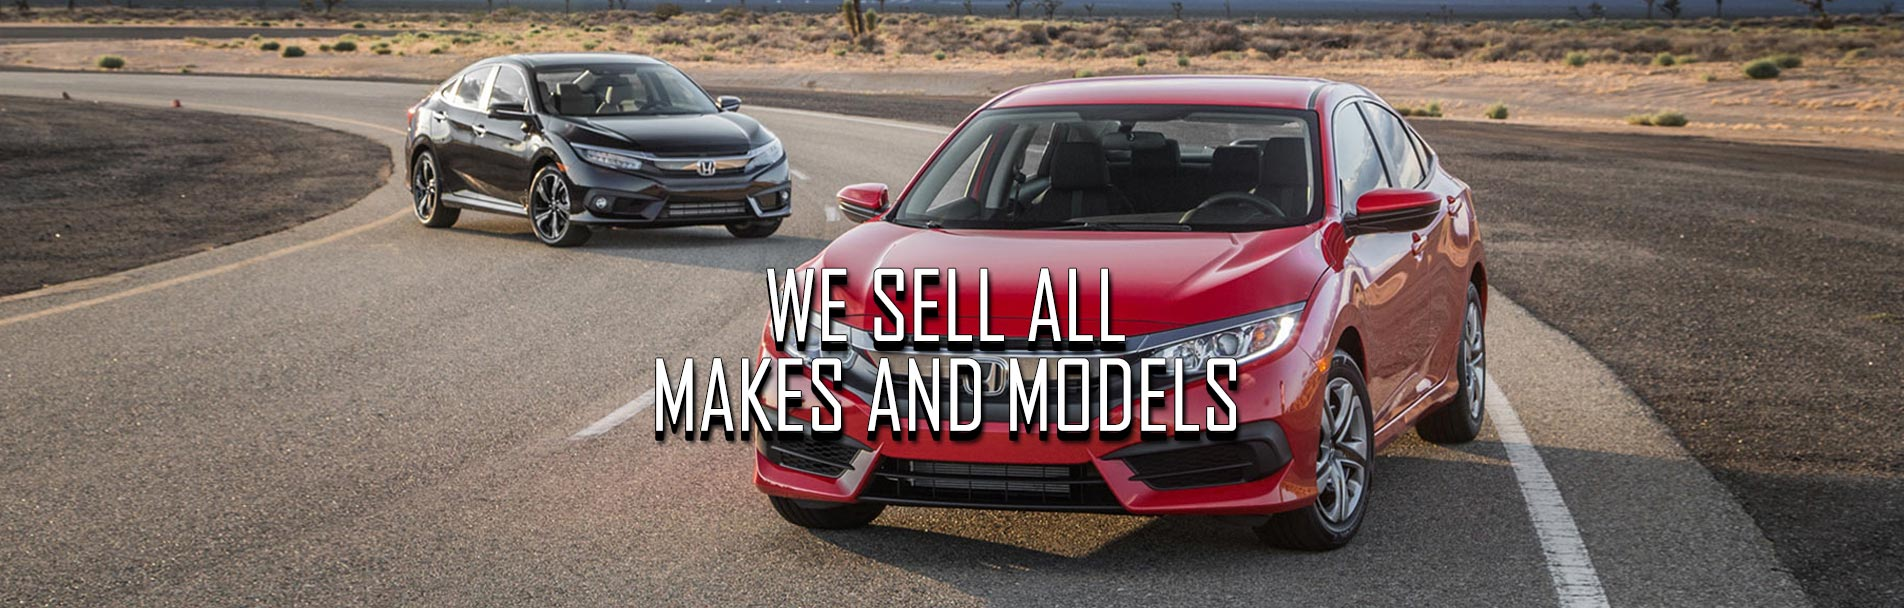 Used cars for sale in Lodi | Route 46 Auto Sales Inc. Lodi NJ